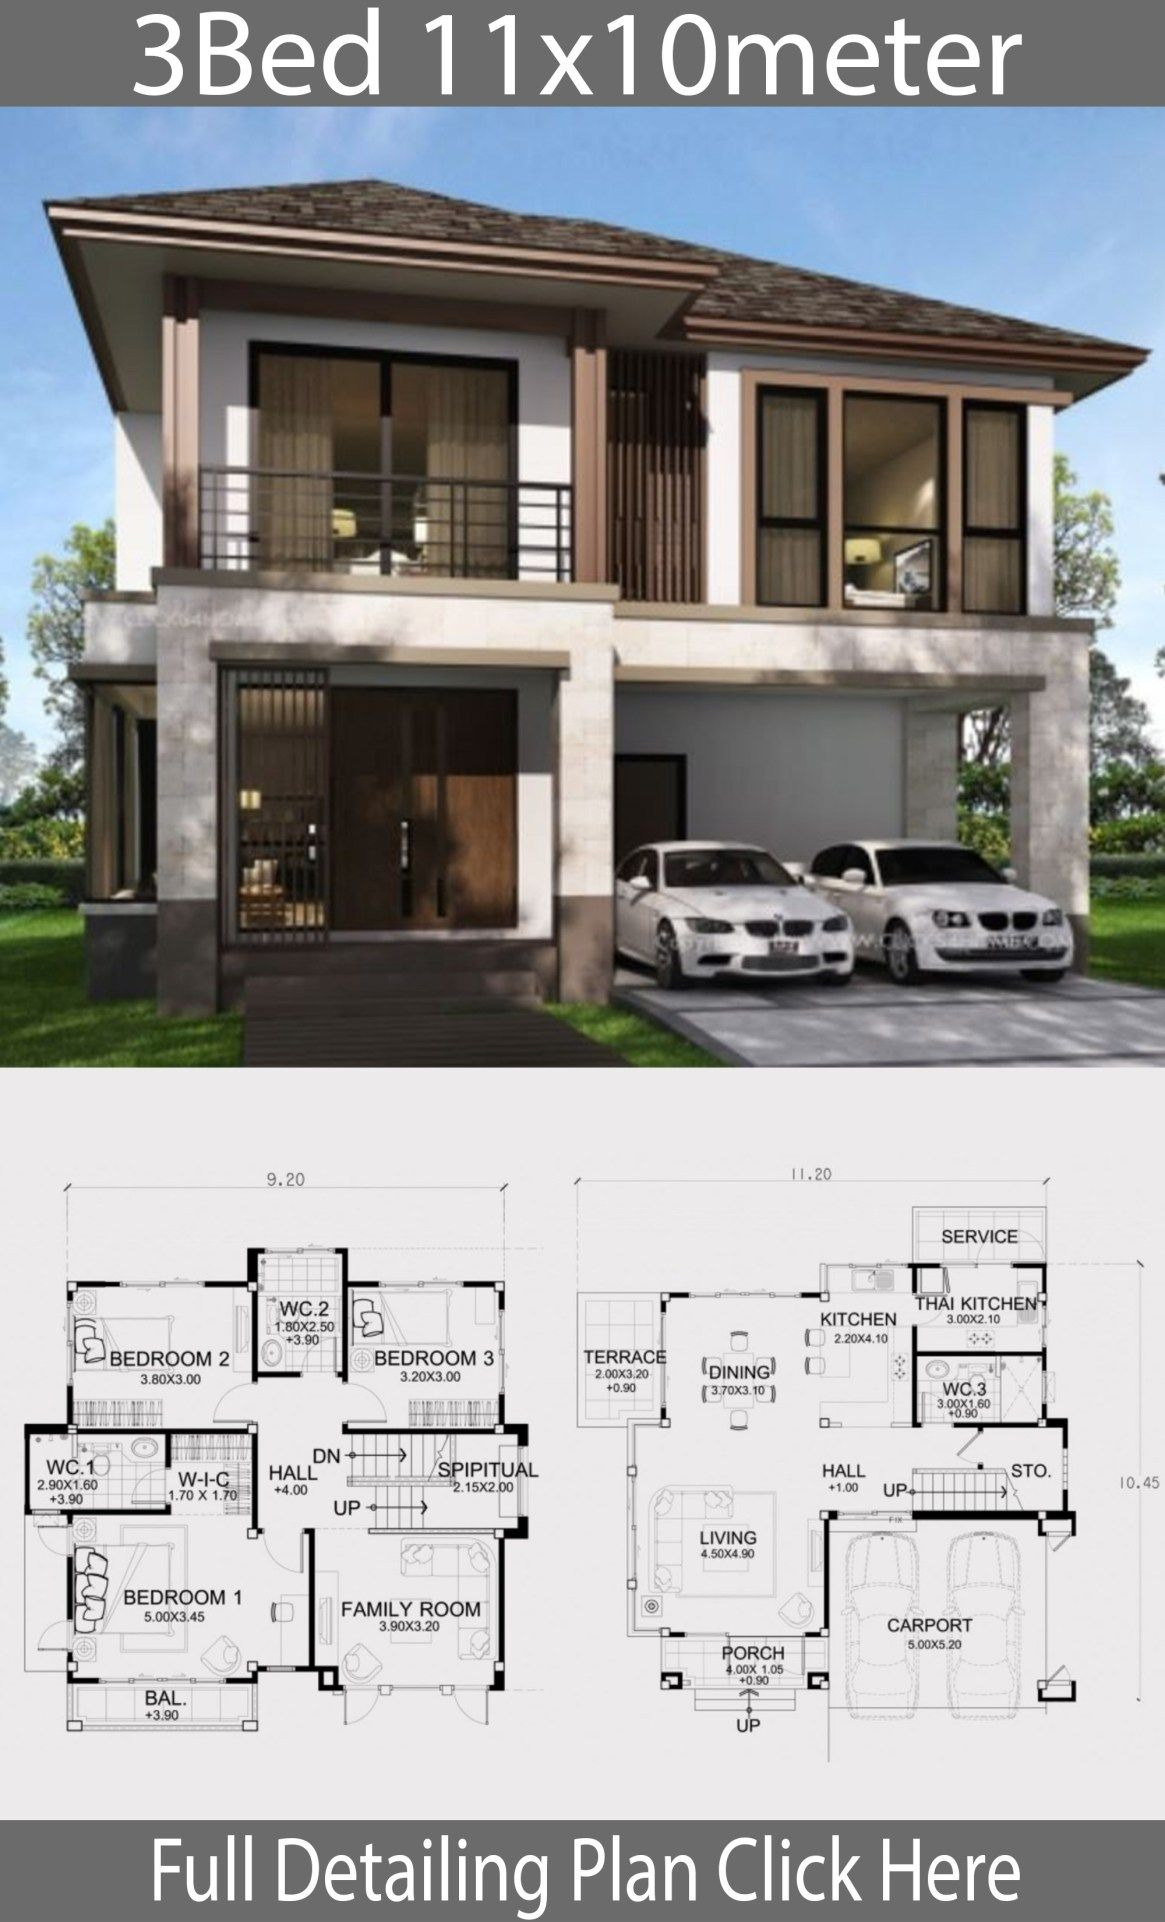 House Plans Designs with Photos Awesome Home Design Plan 11x10m with 3 Bedrooms